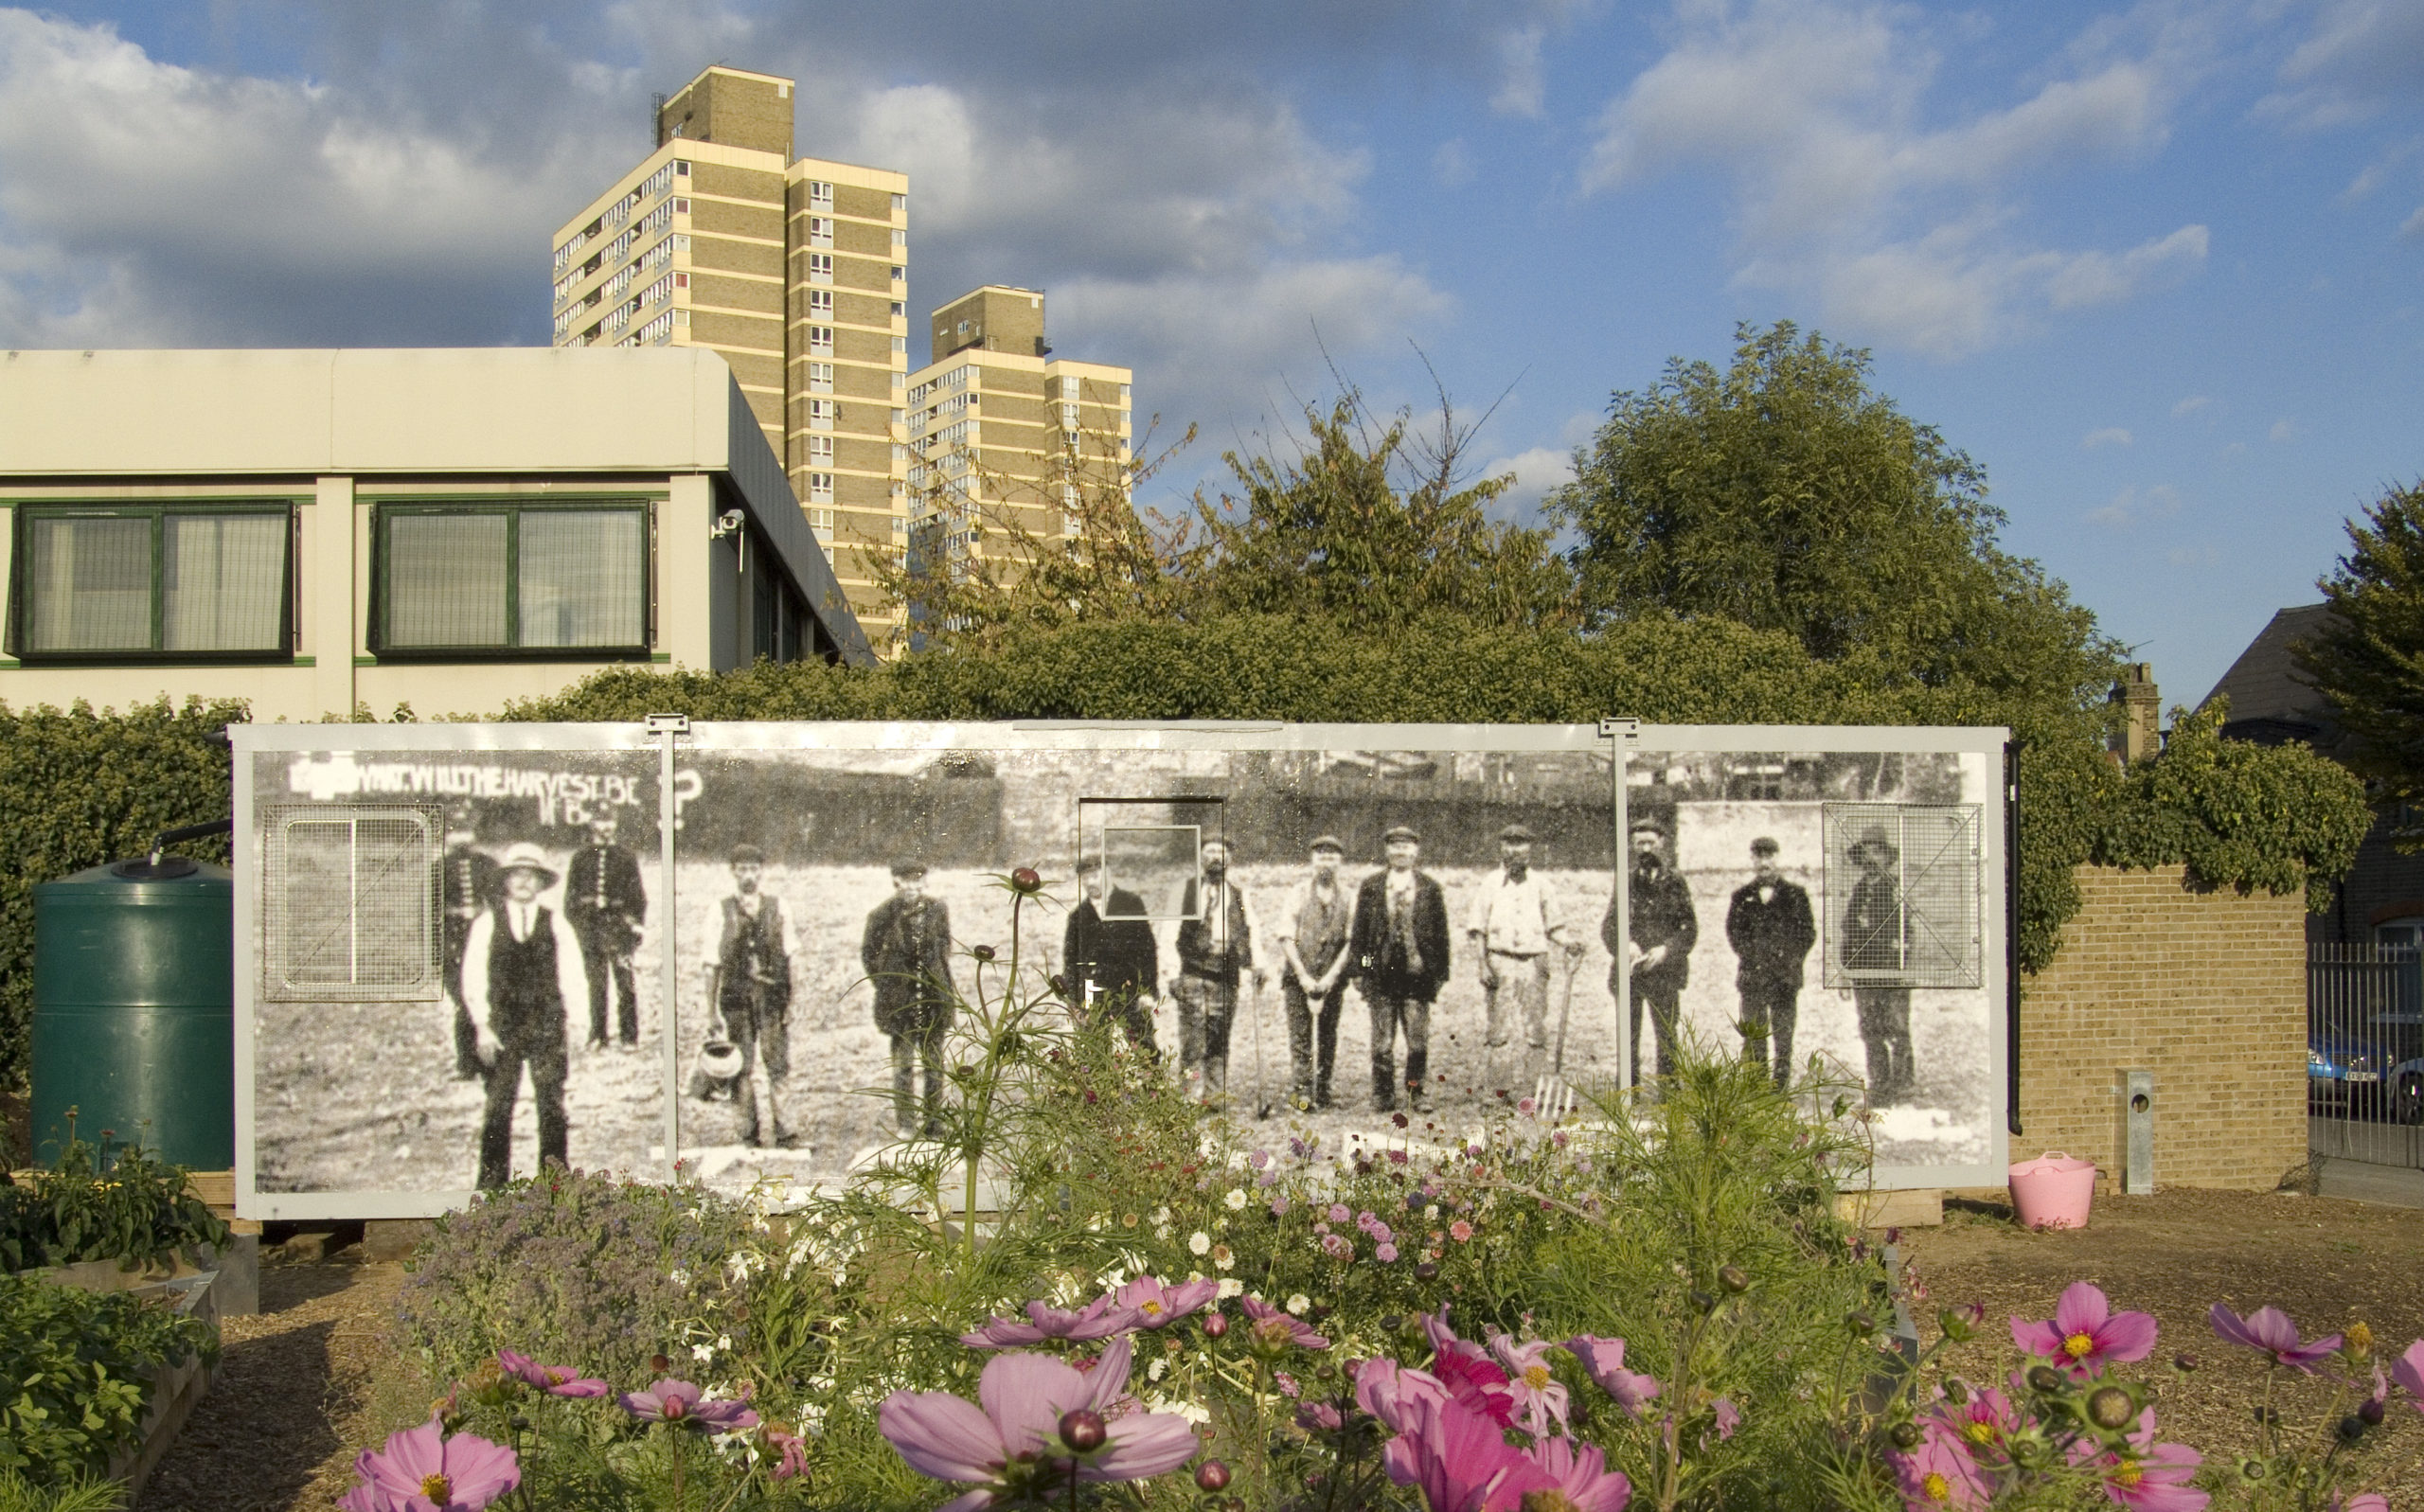 A portacabin stands in the foreground, behind which is a high rise building and a series of trees. A large photographic image covers the wall of the portacabin, depicting the Plaistow land grabbers in their Victorian clothing.